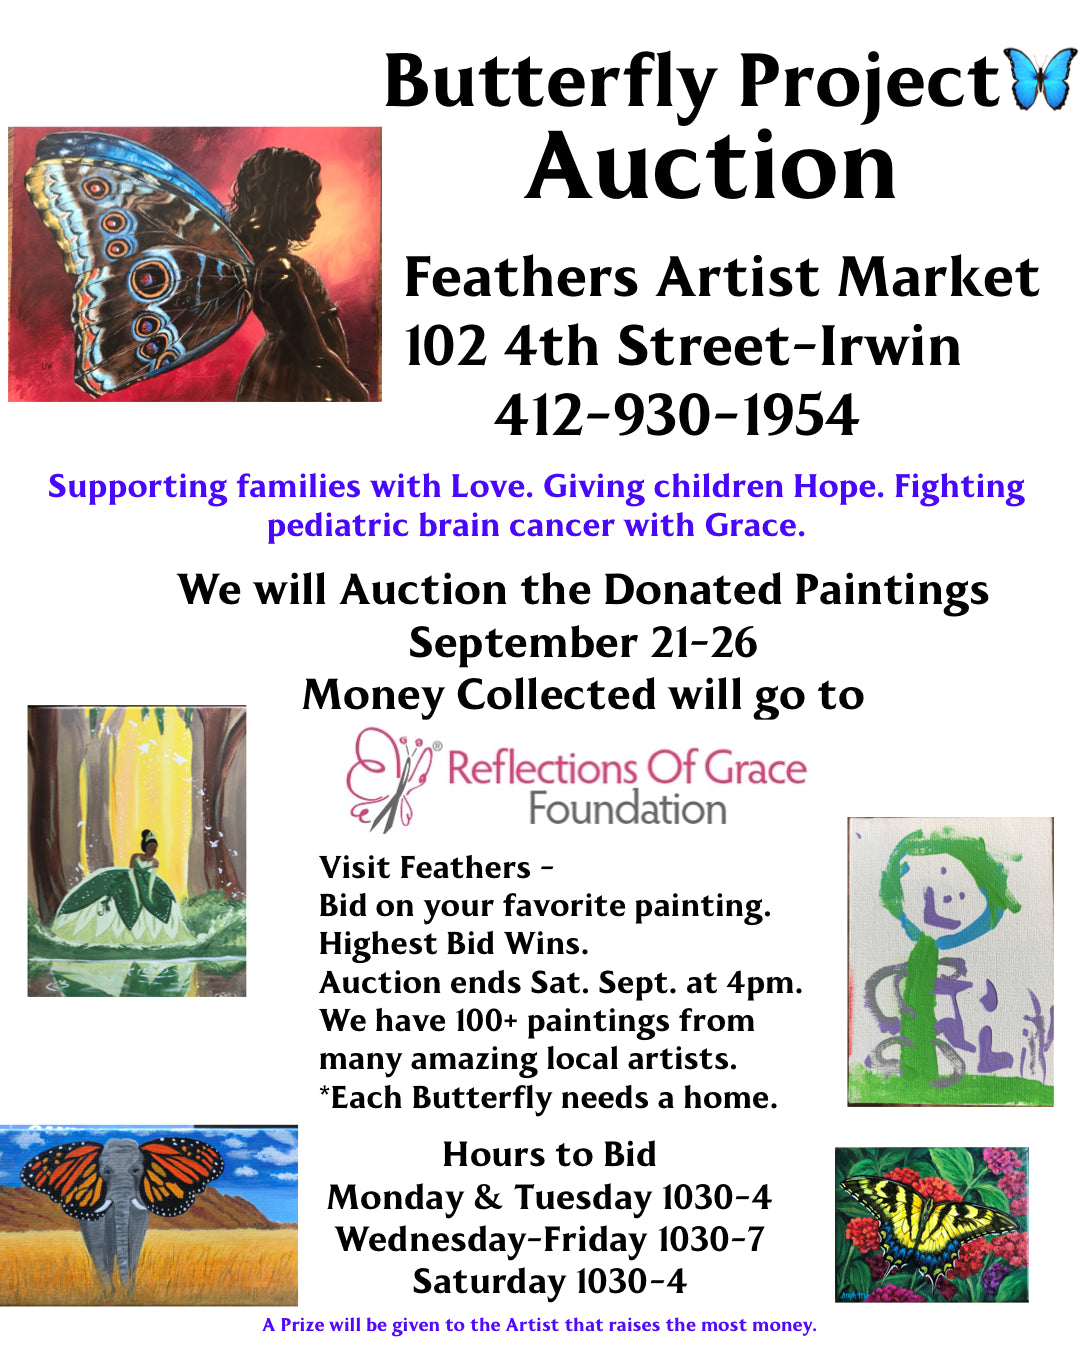 Butterfly Project Auction